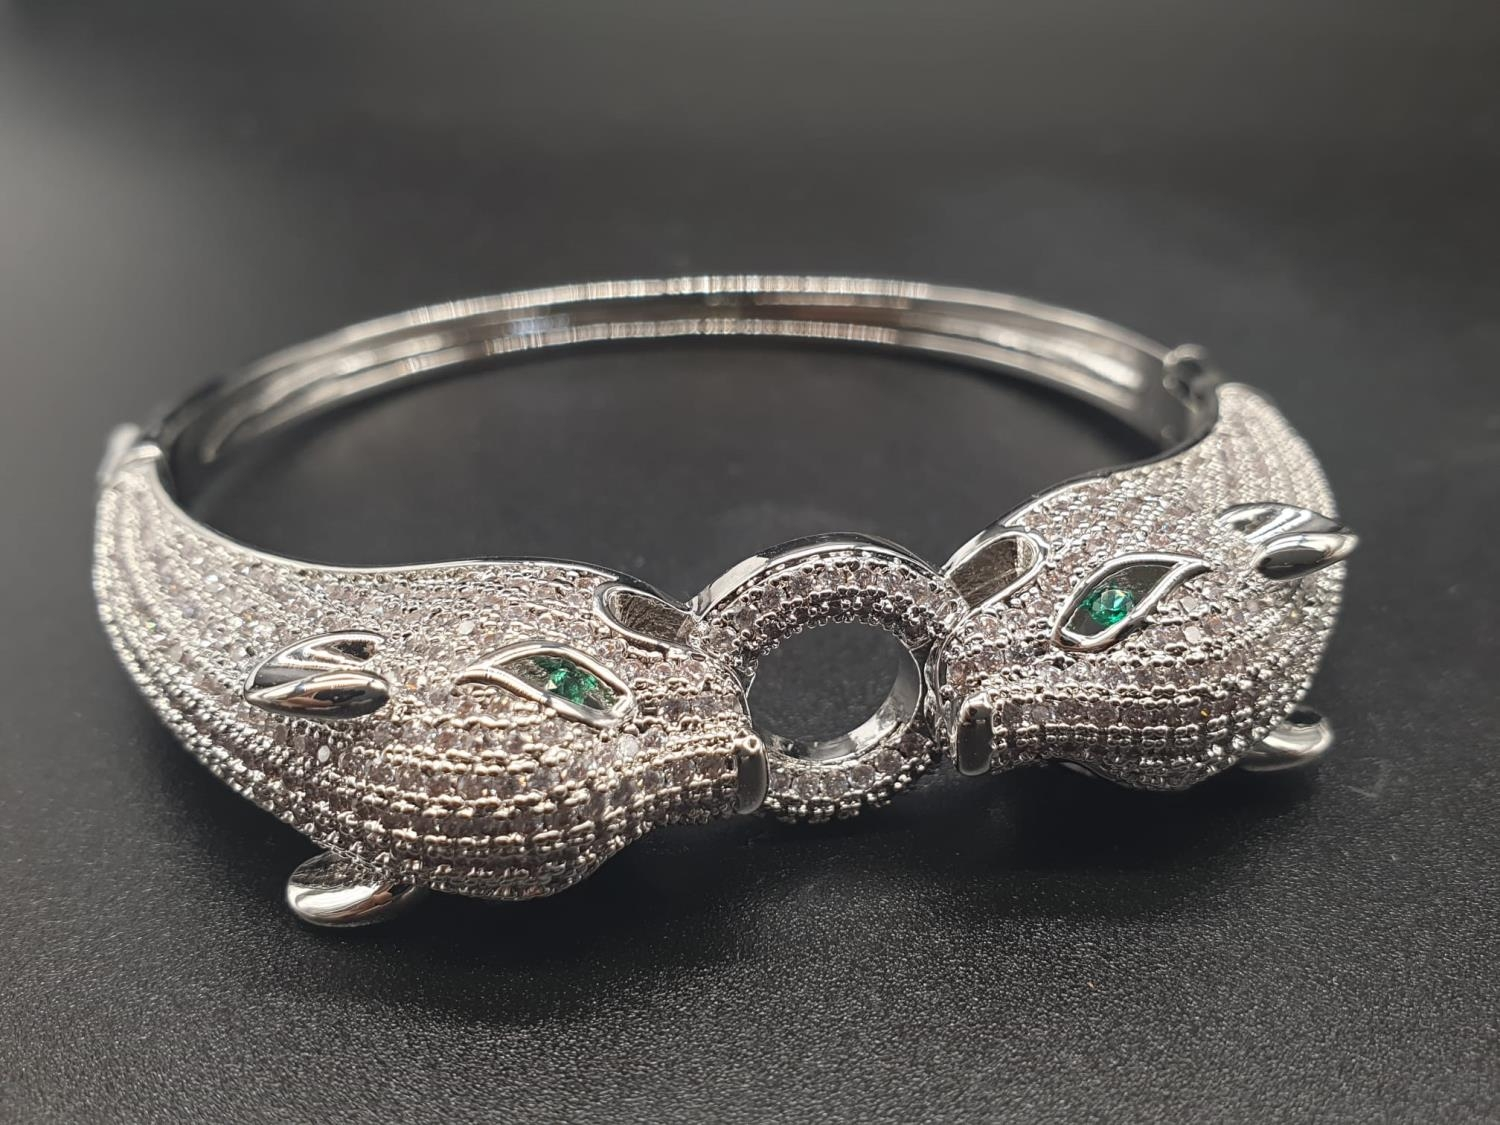 A white metal (untested) Cartier Panther style bracelet and earrings set In a presentation box. Ring - Image 2 of 15